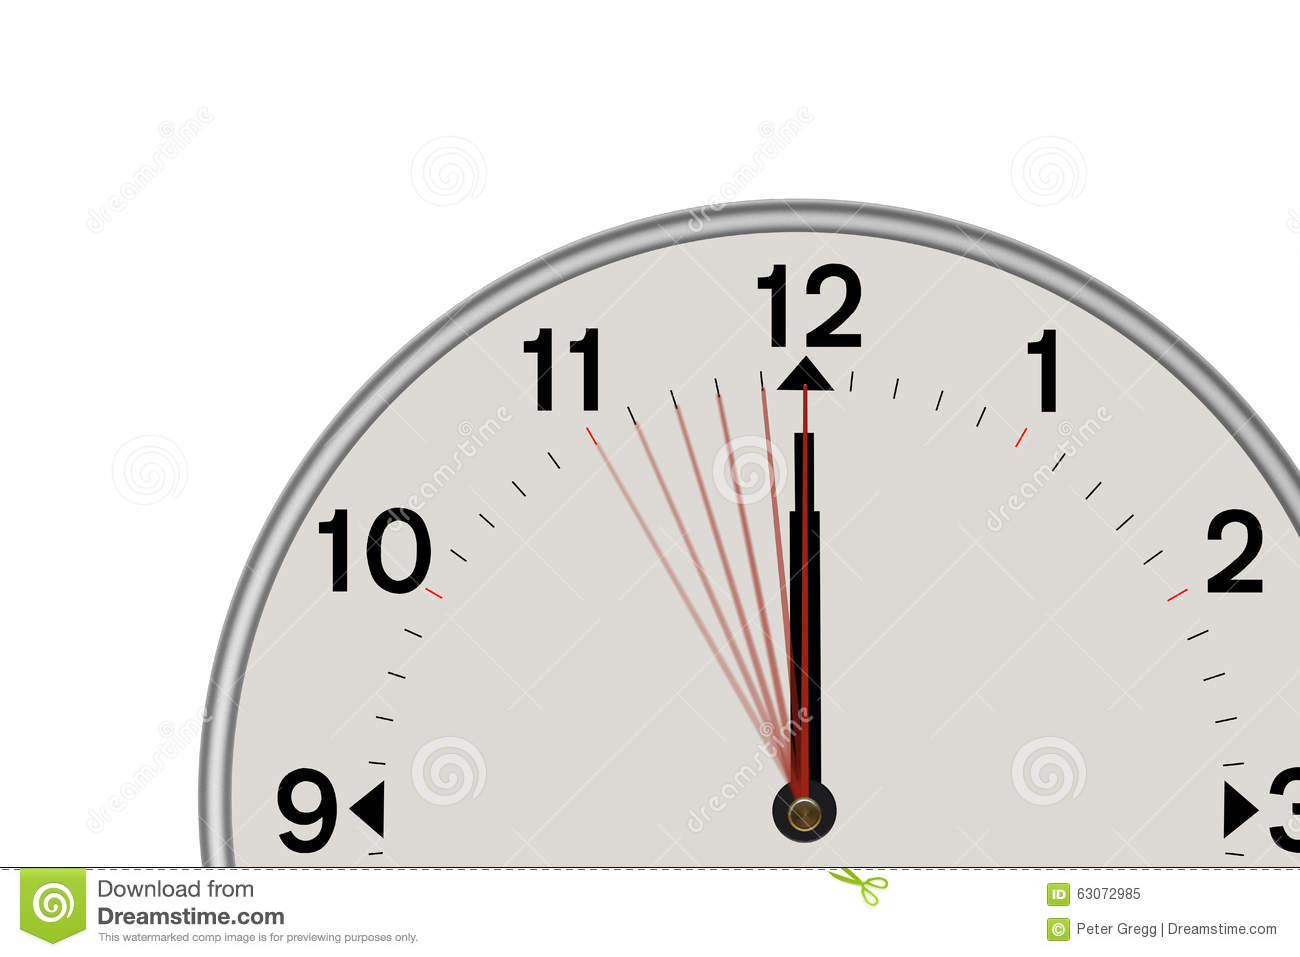 Clock showing a 5 second Countdown (White background)